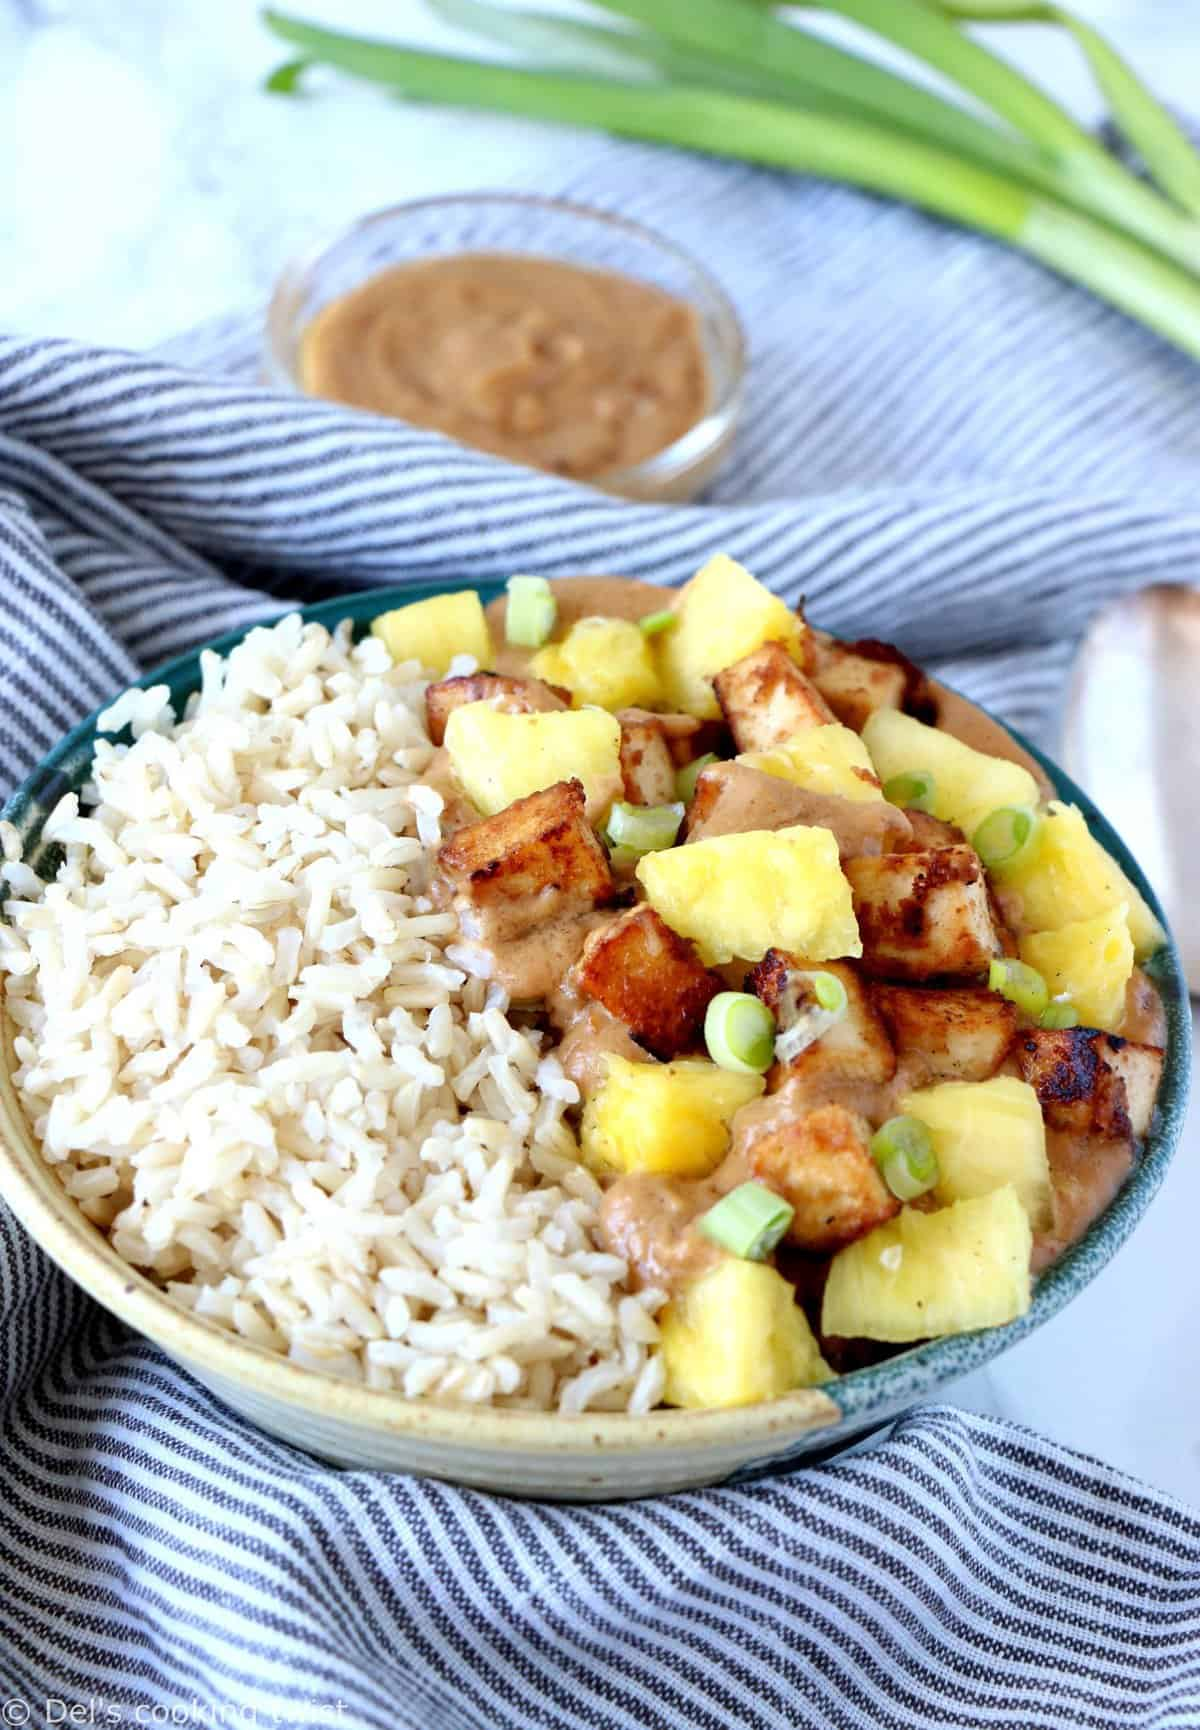 Creamy Peanut Butter Tofu Pineapple Rice